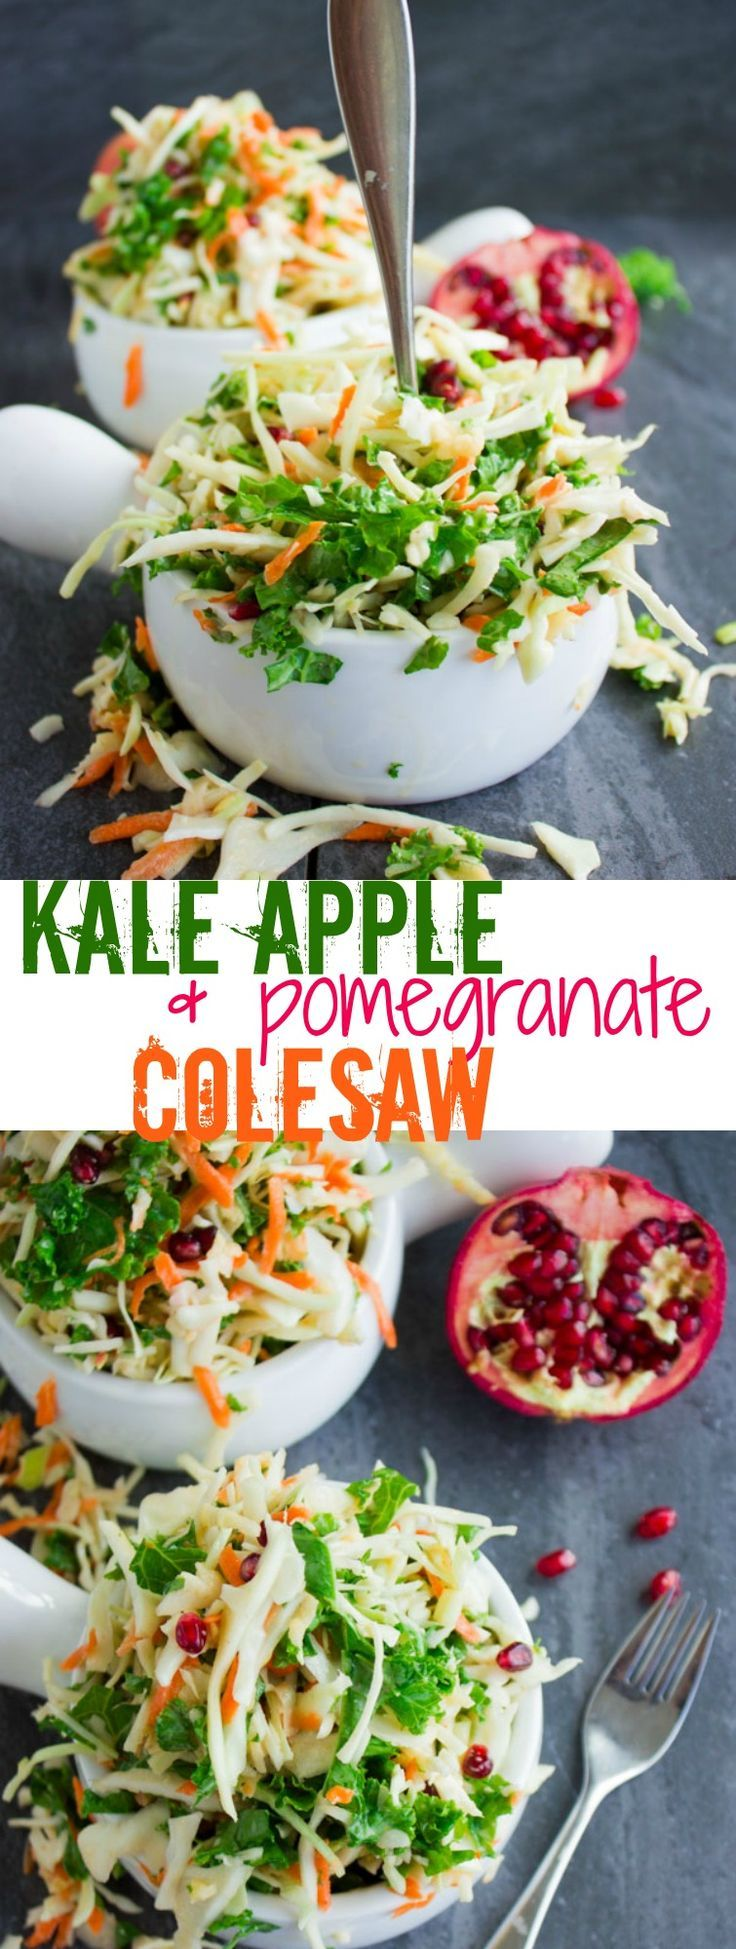 Coleslaw with Kale Apple Pomegranate. Easy, Light, Refreshing, Zesty, Crunchy, Sweet and Satisfying! Vegan, Gluten Free, Healthy and SO good slaw that makes a perfect picnic, BBQ, potluck salad! Don't miss this recipe! www.twopurplefigs.com